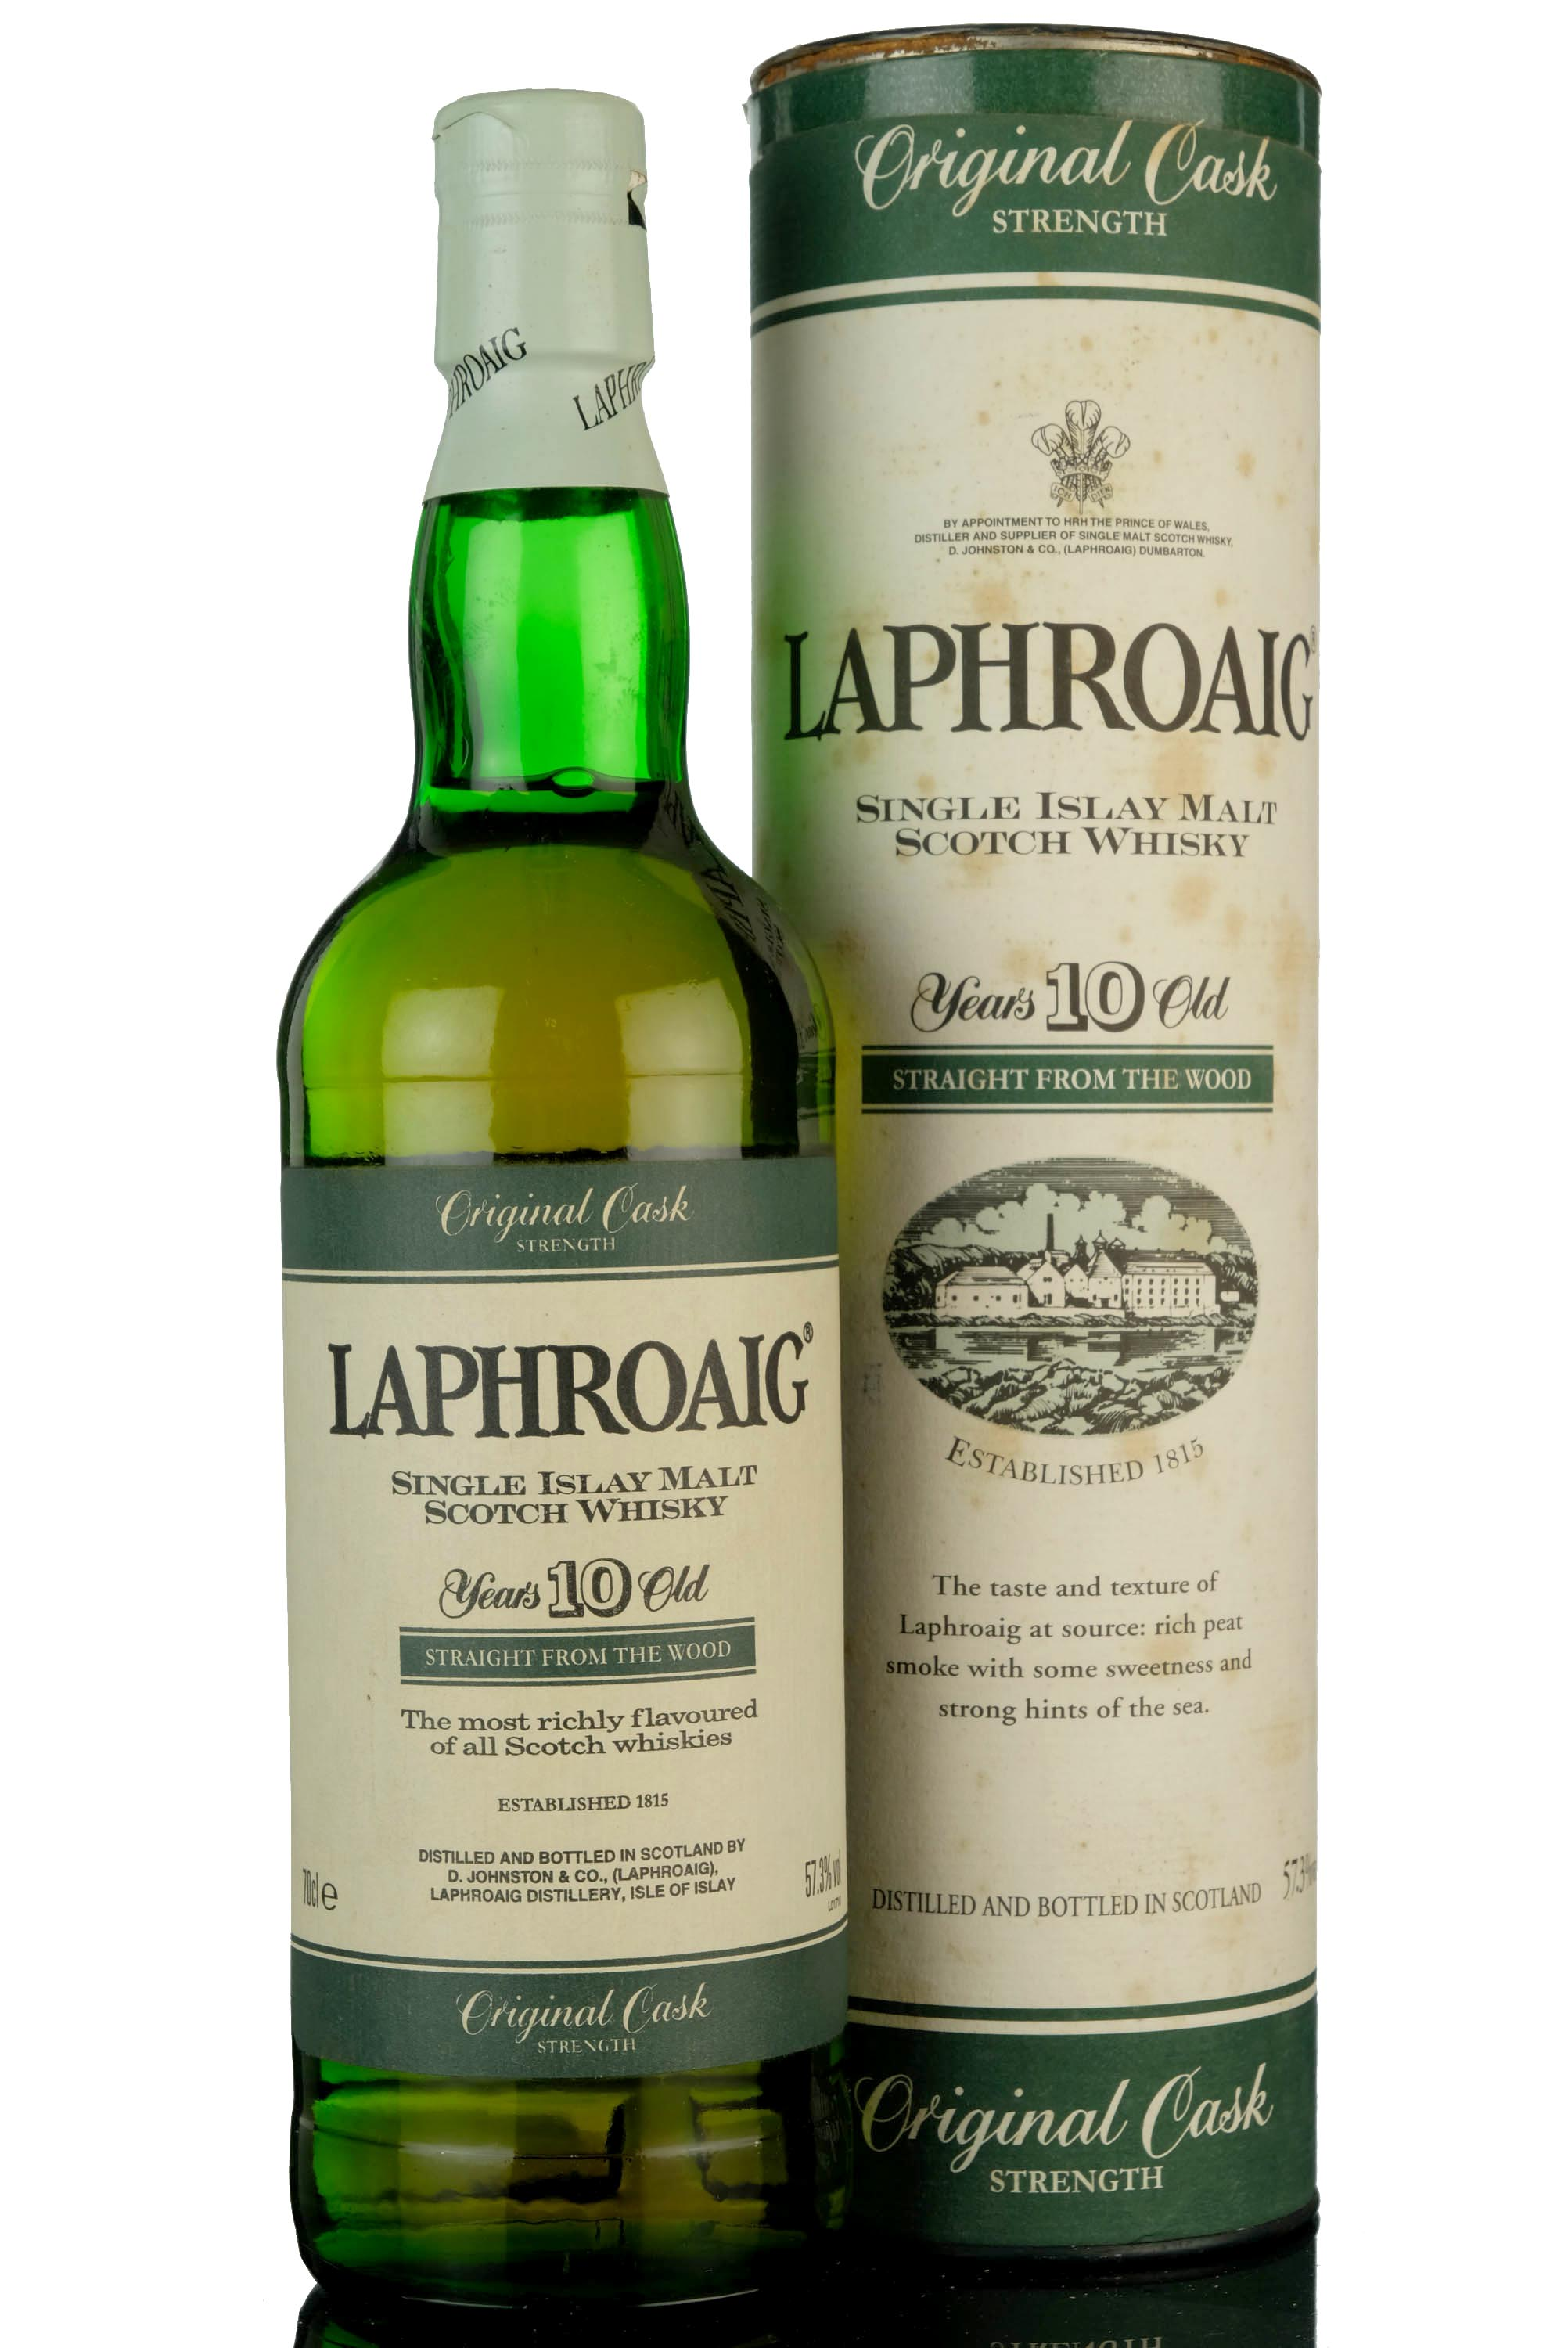 laphroaig 10 year old - original cask strength - 57.3%